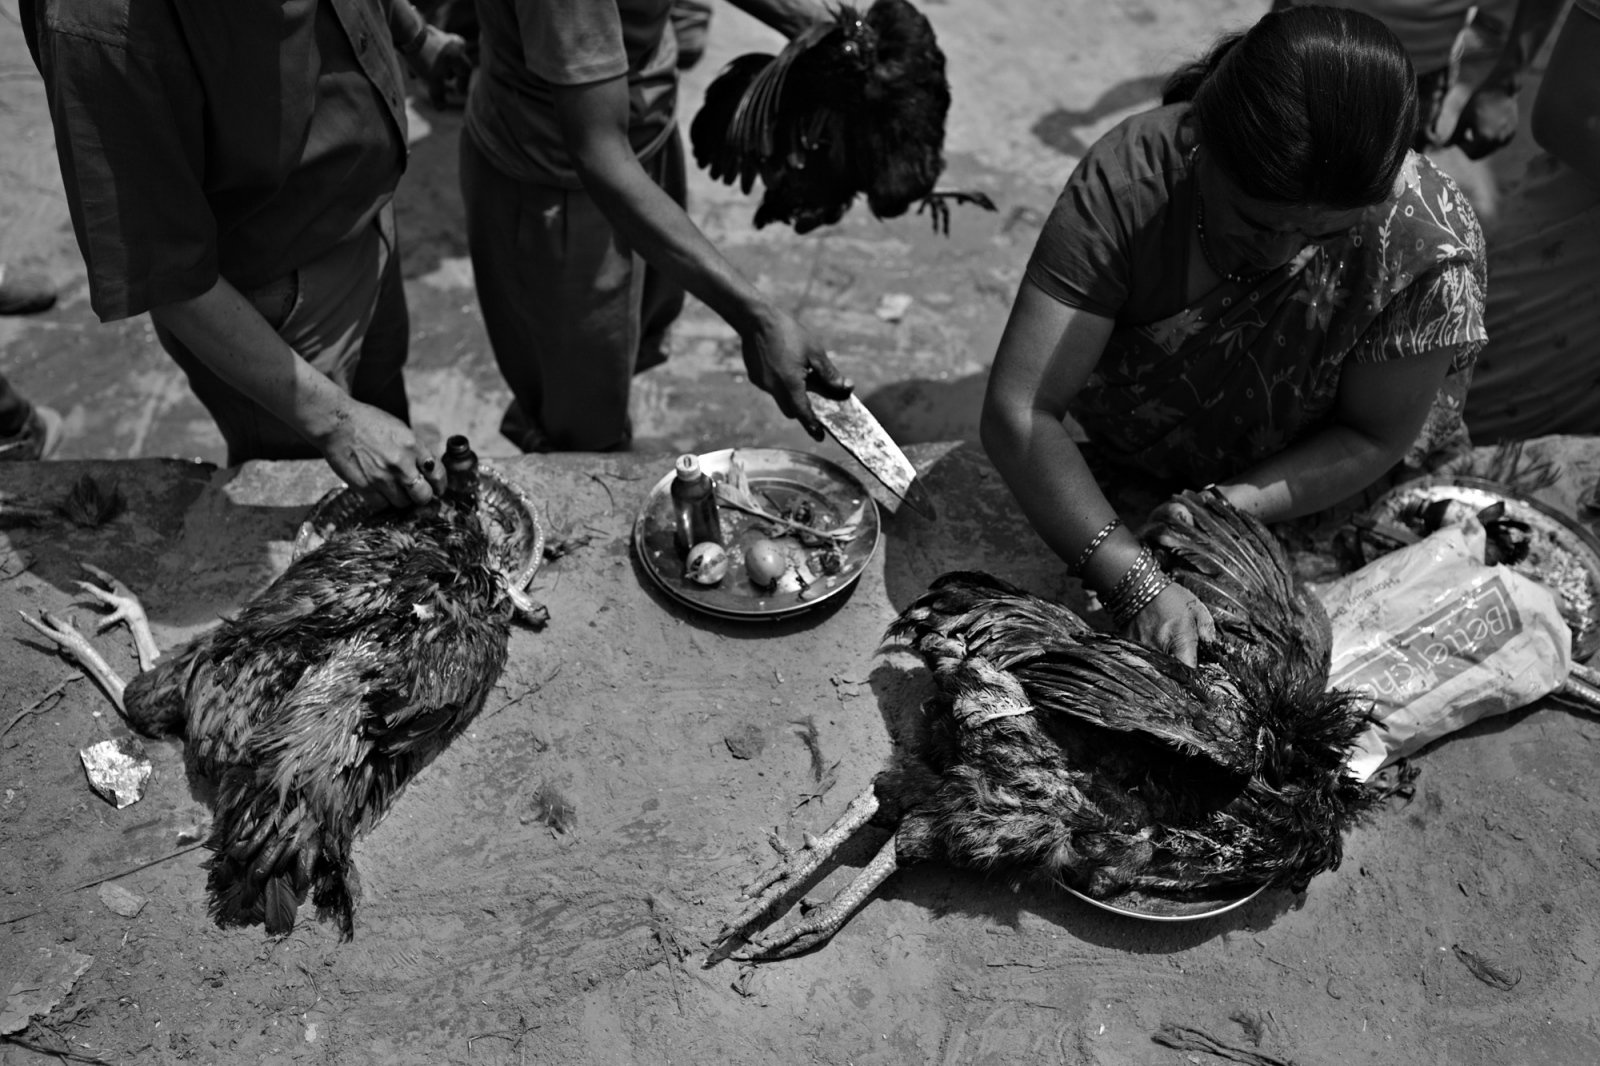 Devotees slaughter chickens as offerings during a small local festival meant to bring in a good harvest and luck for the spring.